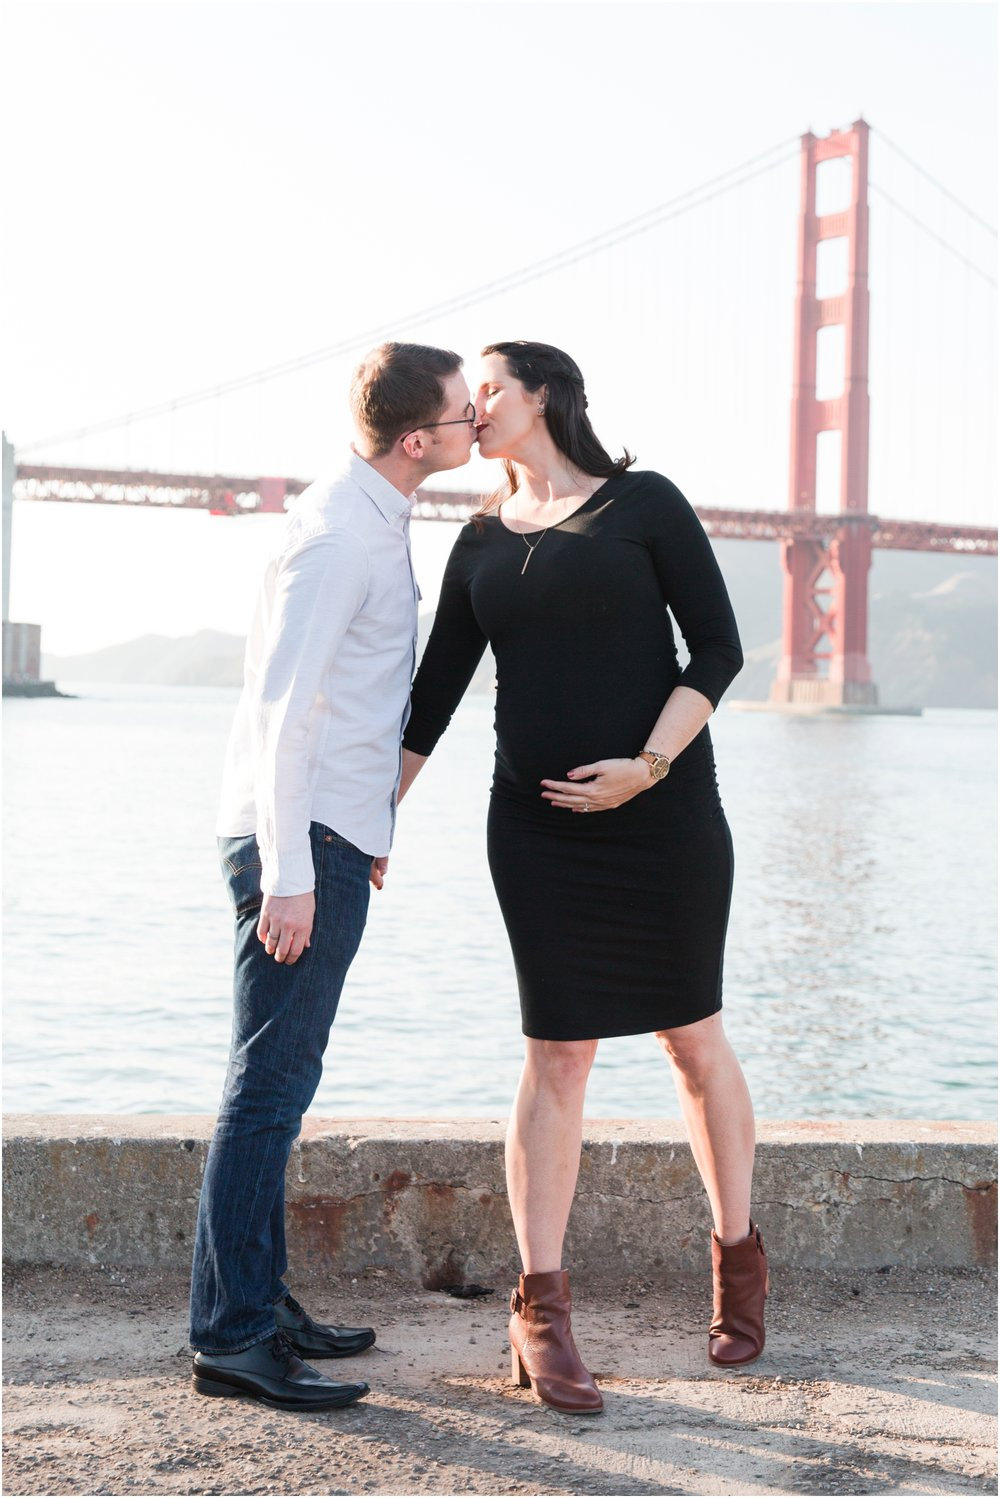 Crissy Field San Francisco maternity pictures by Briana Calderon Photography_0267.jpg